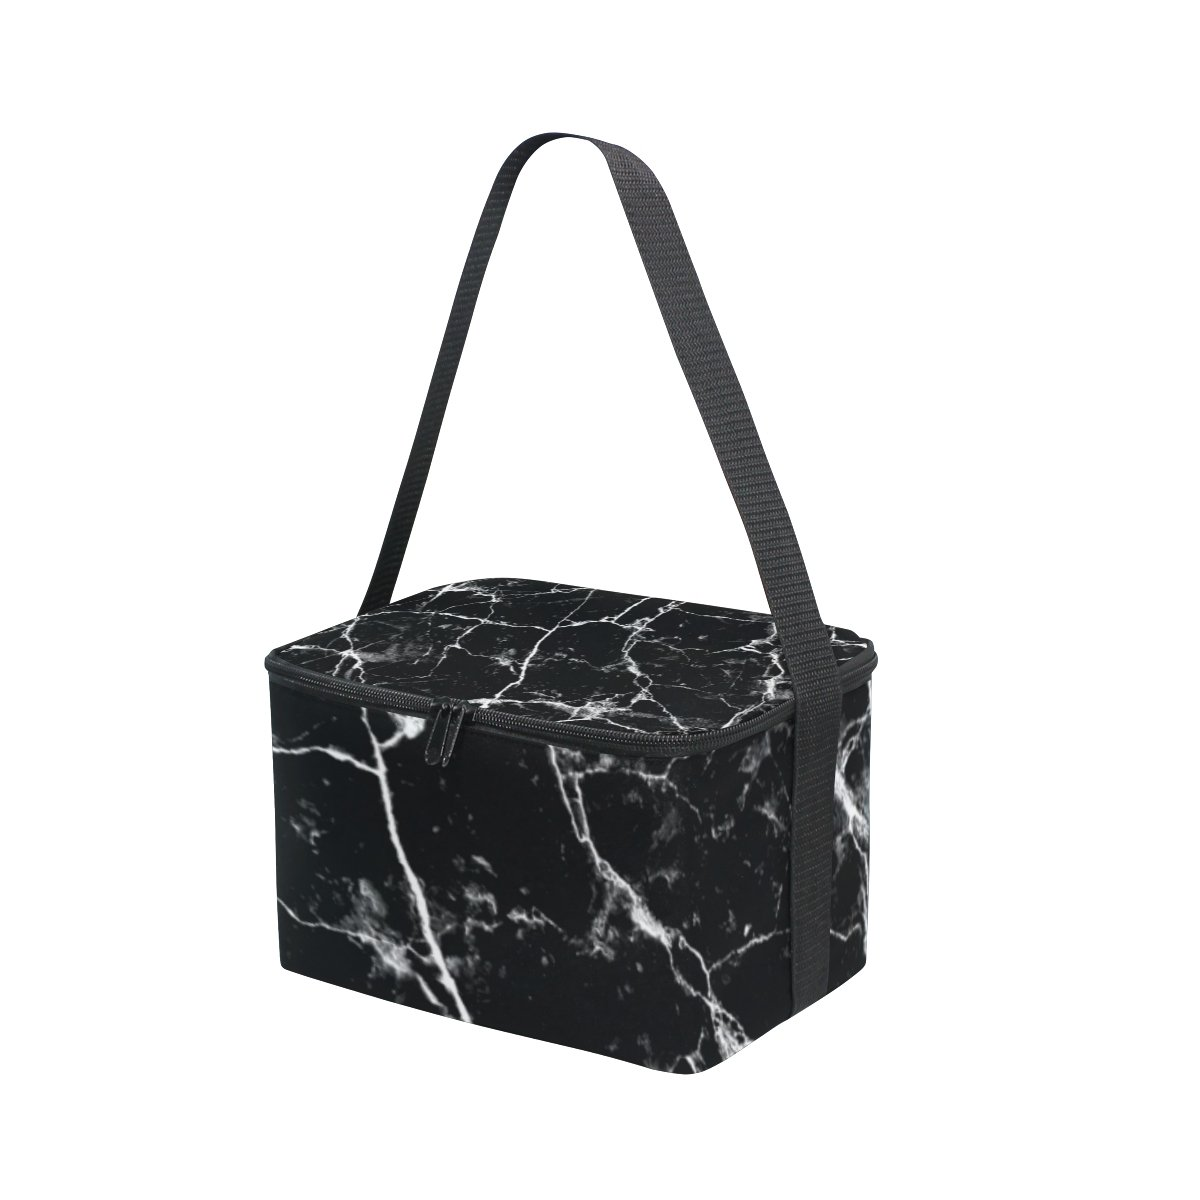 74bfce815ee3 Amazon.com: Vantaso Lunch Cooler Bag Insulated White Black Marble ...